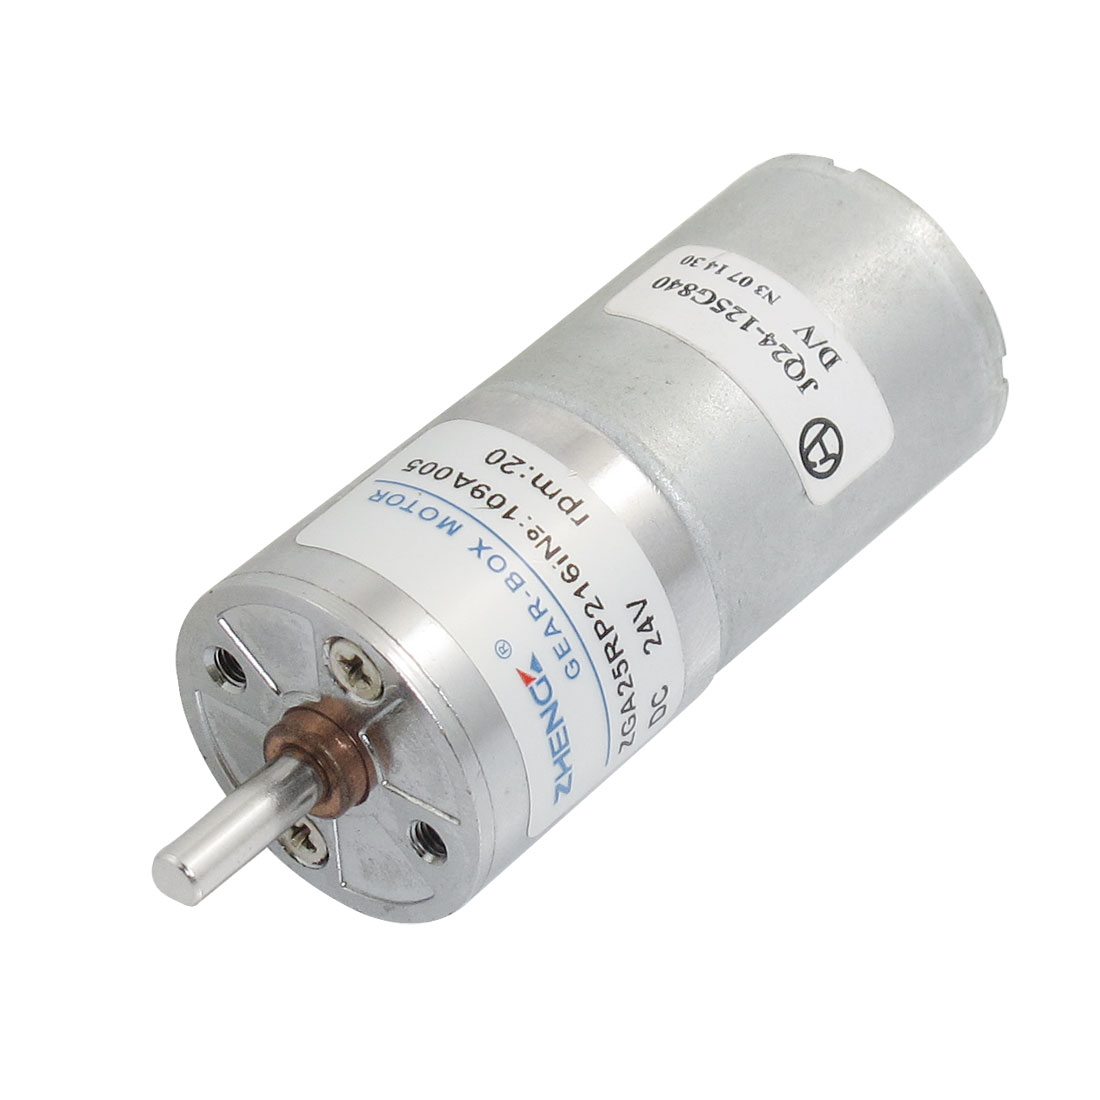 4mm Shaft Diameter Cylinder Shape Electric Gear Motor 2P 24VDC 20RPM